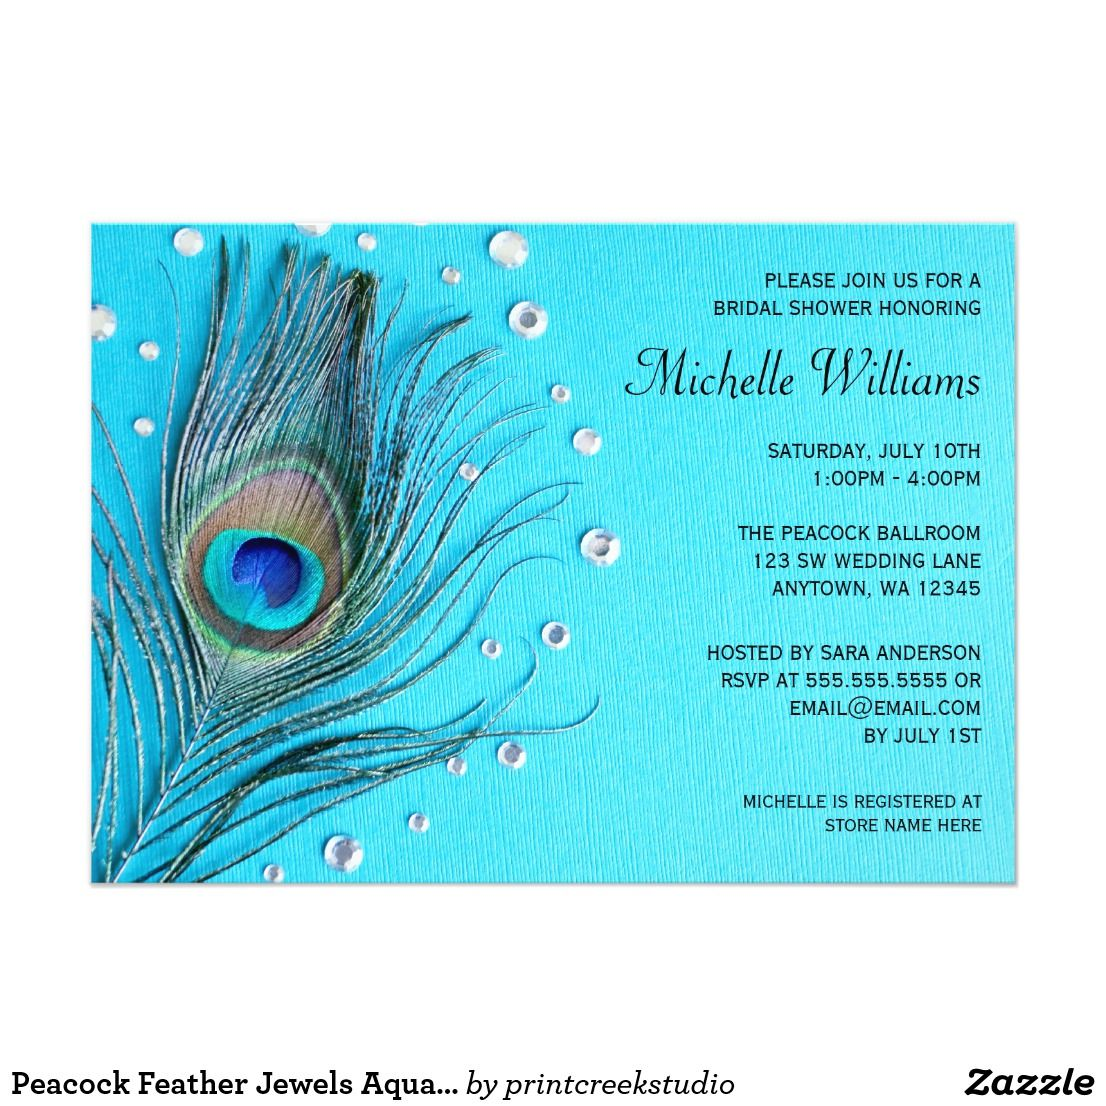 peacock feather jewels aqua bridal shower card elegant peacock feather and jewels bridal shower invitations perfect for a peacock feather themed bridal